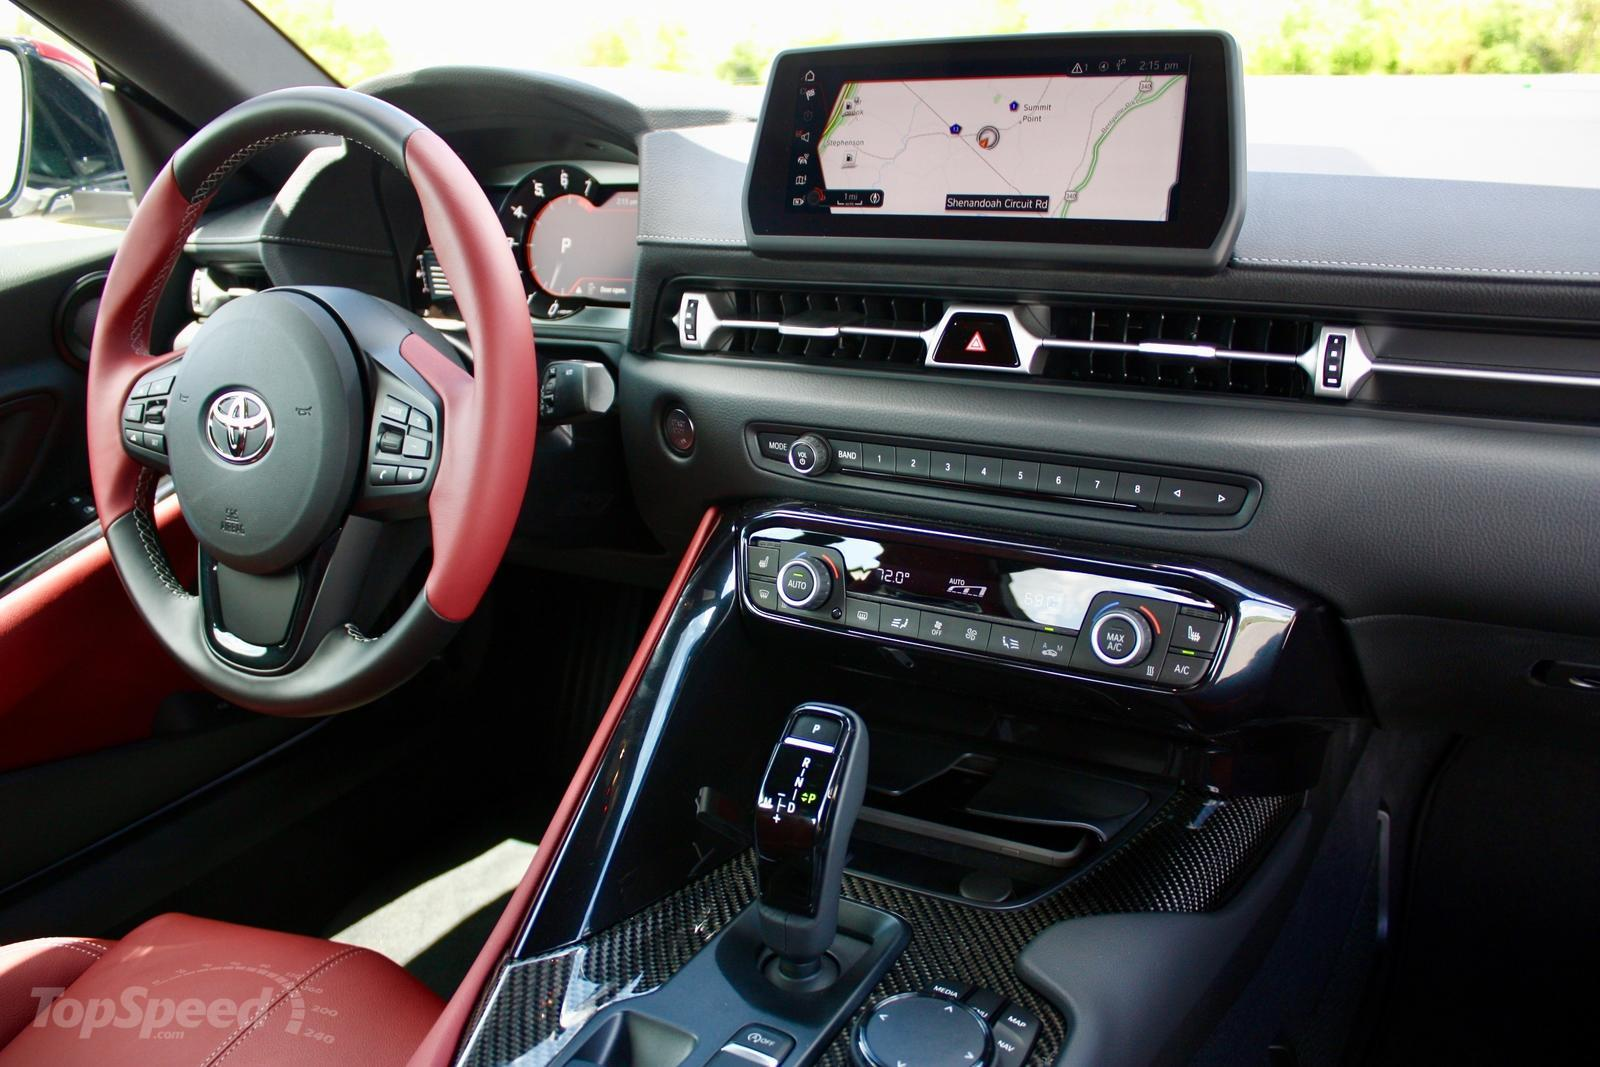 Who Makes Cadillac >> 2020 Toyota Supra Interior First Impressions Pictures, Photos, Wallpapers. | Top Speed